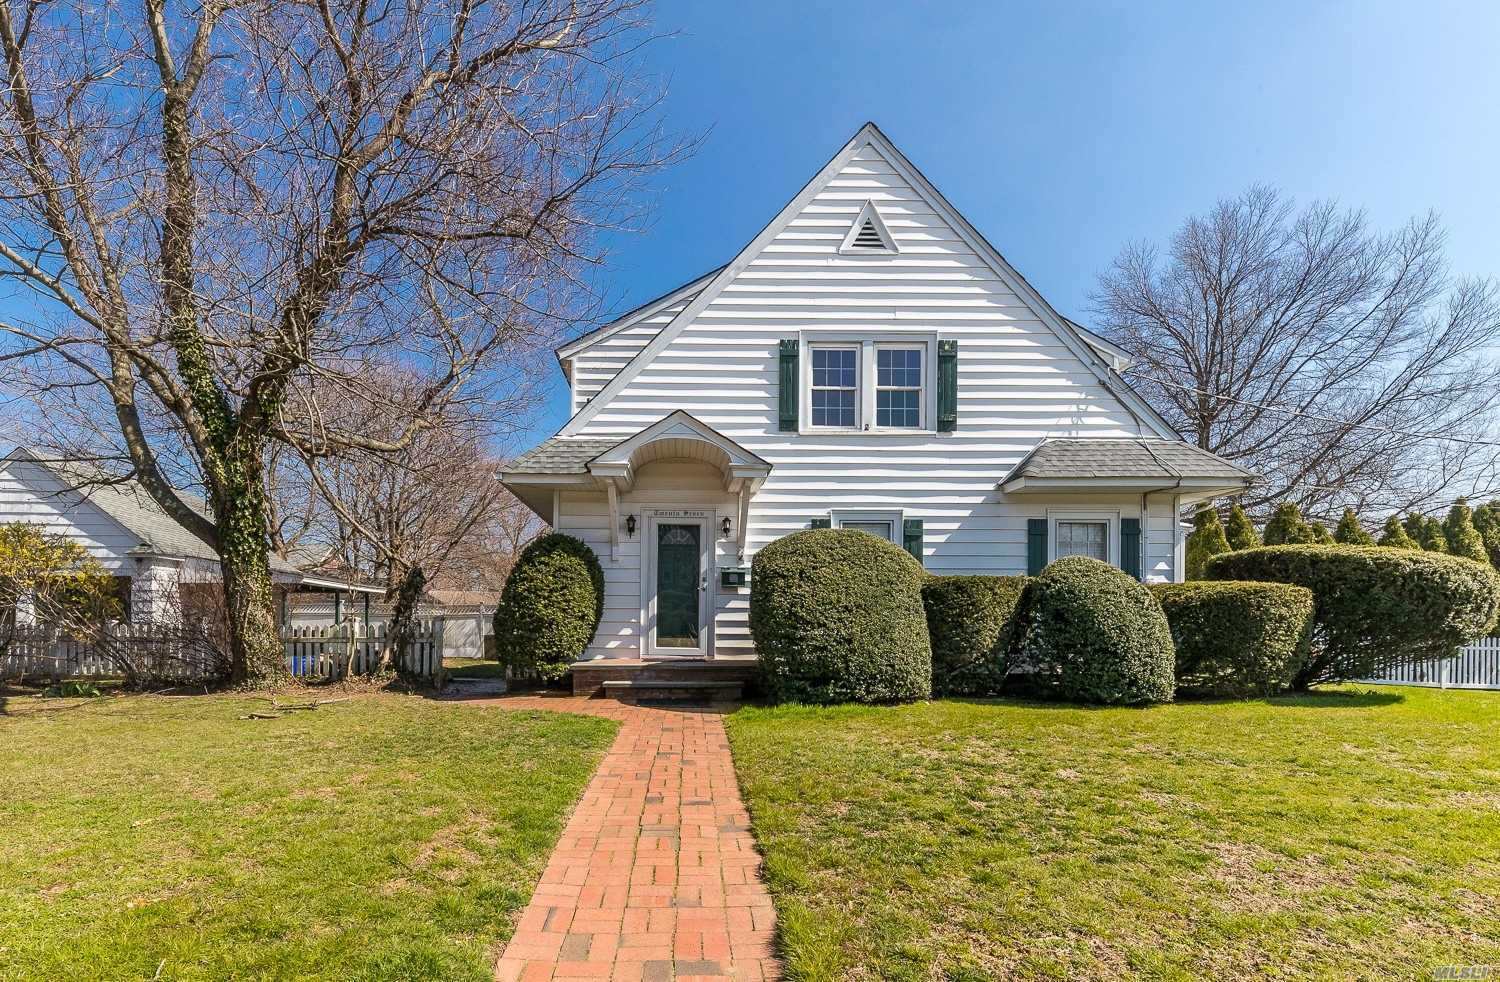 Whole House Rental-Location Location Location! Rockville Centre Schools. Newly Painted. Gleaming Hard Wood Floors Throughout. Beautiful Large Den. Full Basement for Washer & Dryer & Storage. 2 Car Garage. All Utilities Paid for by Tenant. Move in Date 4/15/19